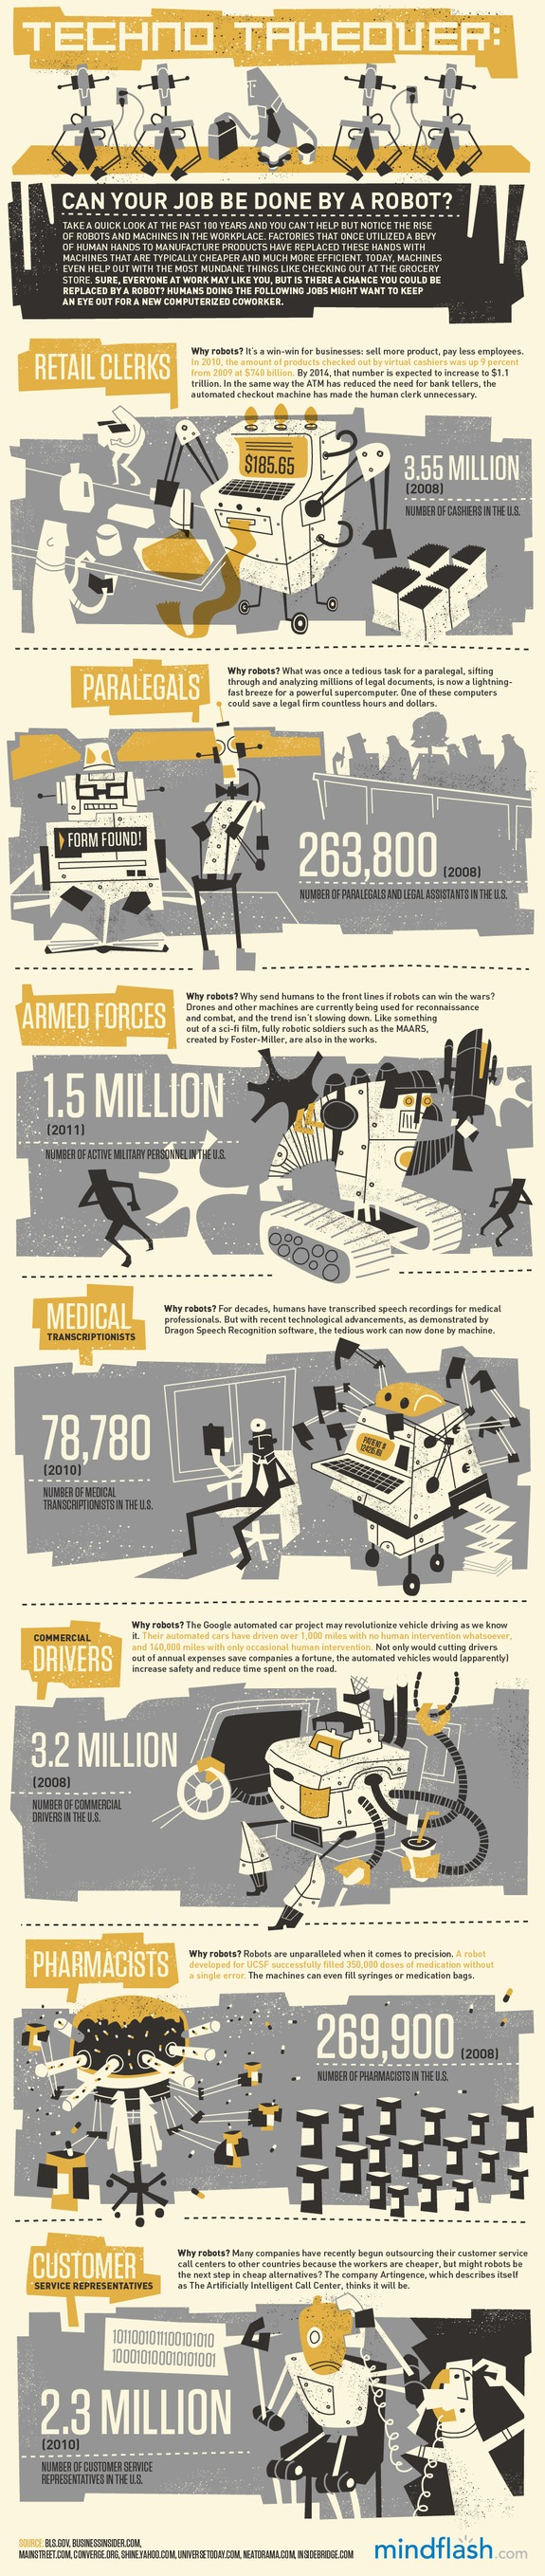 Can Your Job Be Done By a Robot? infographic